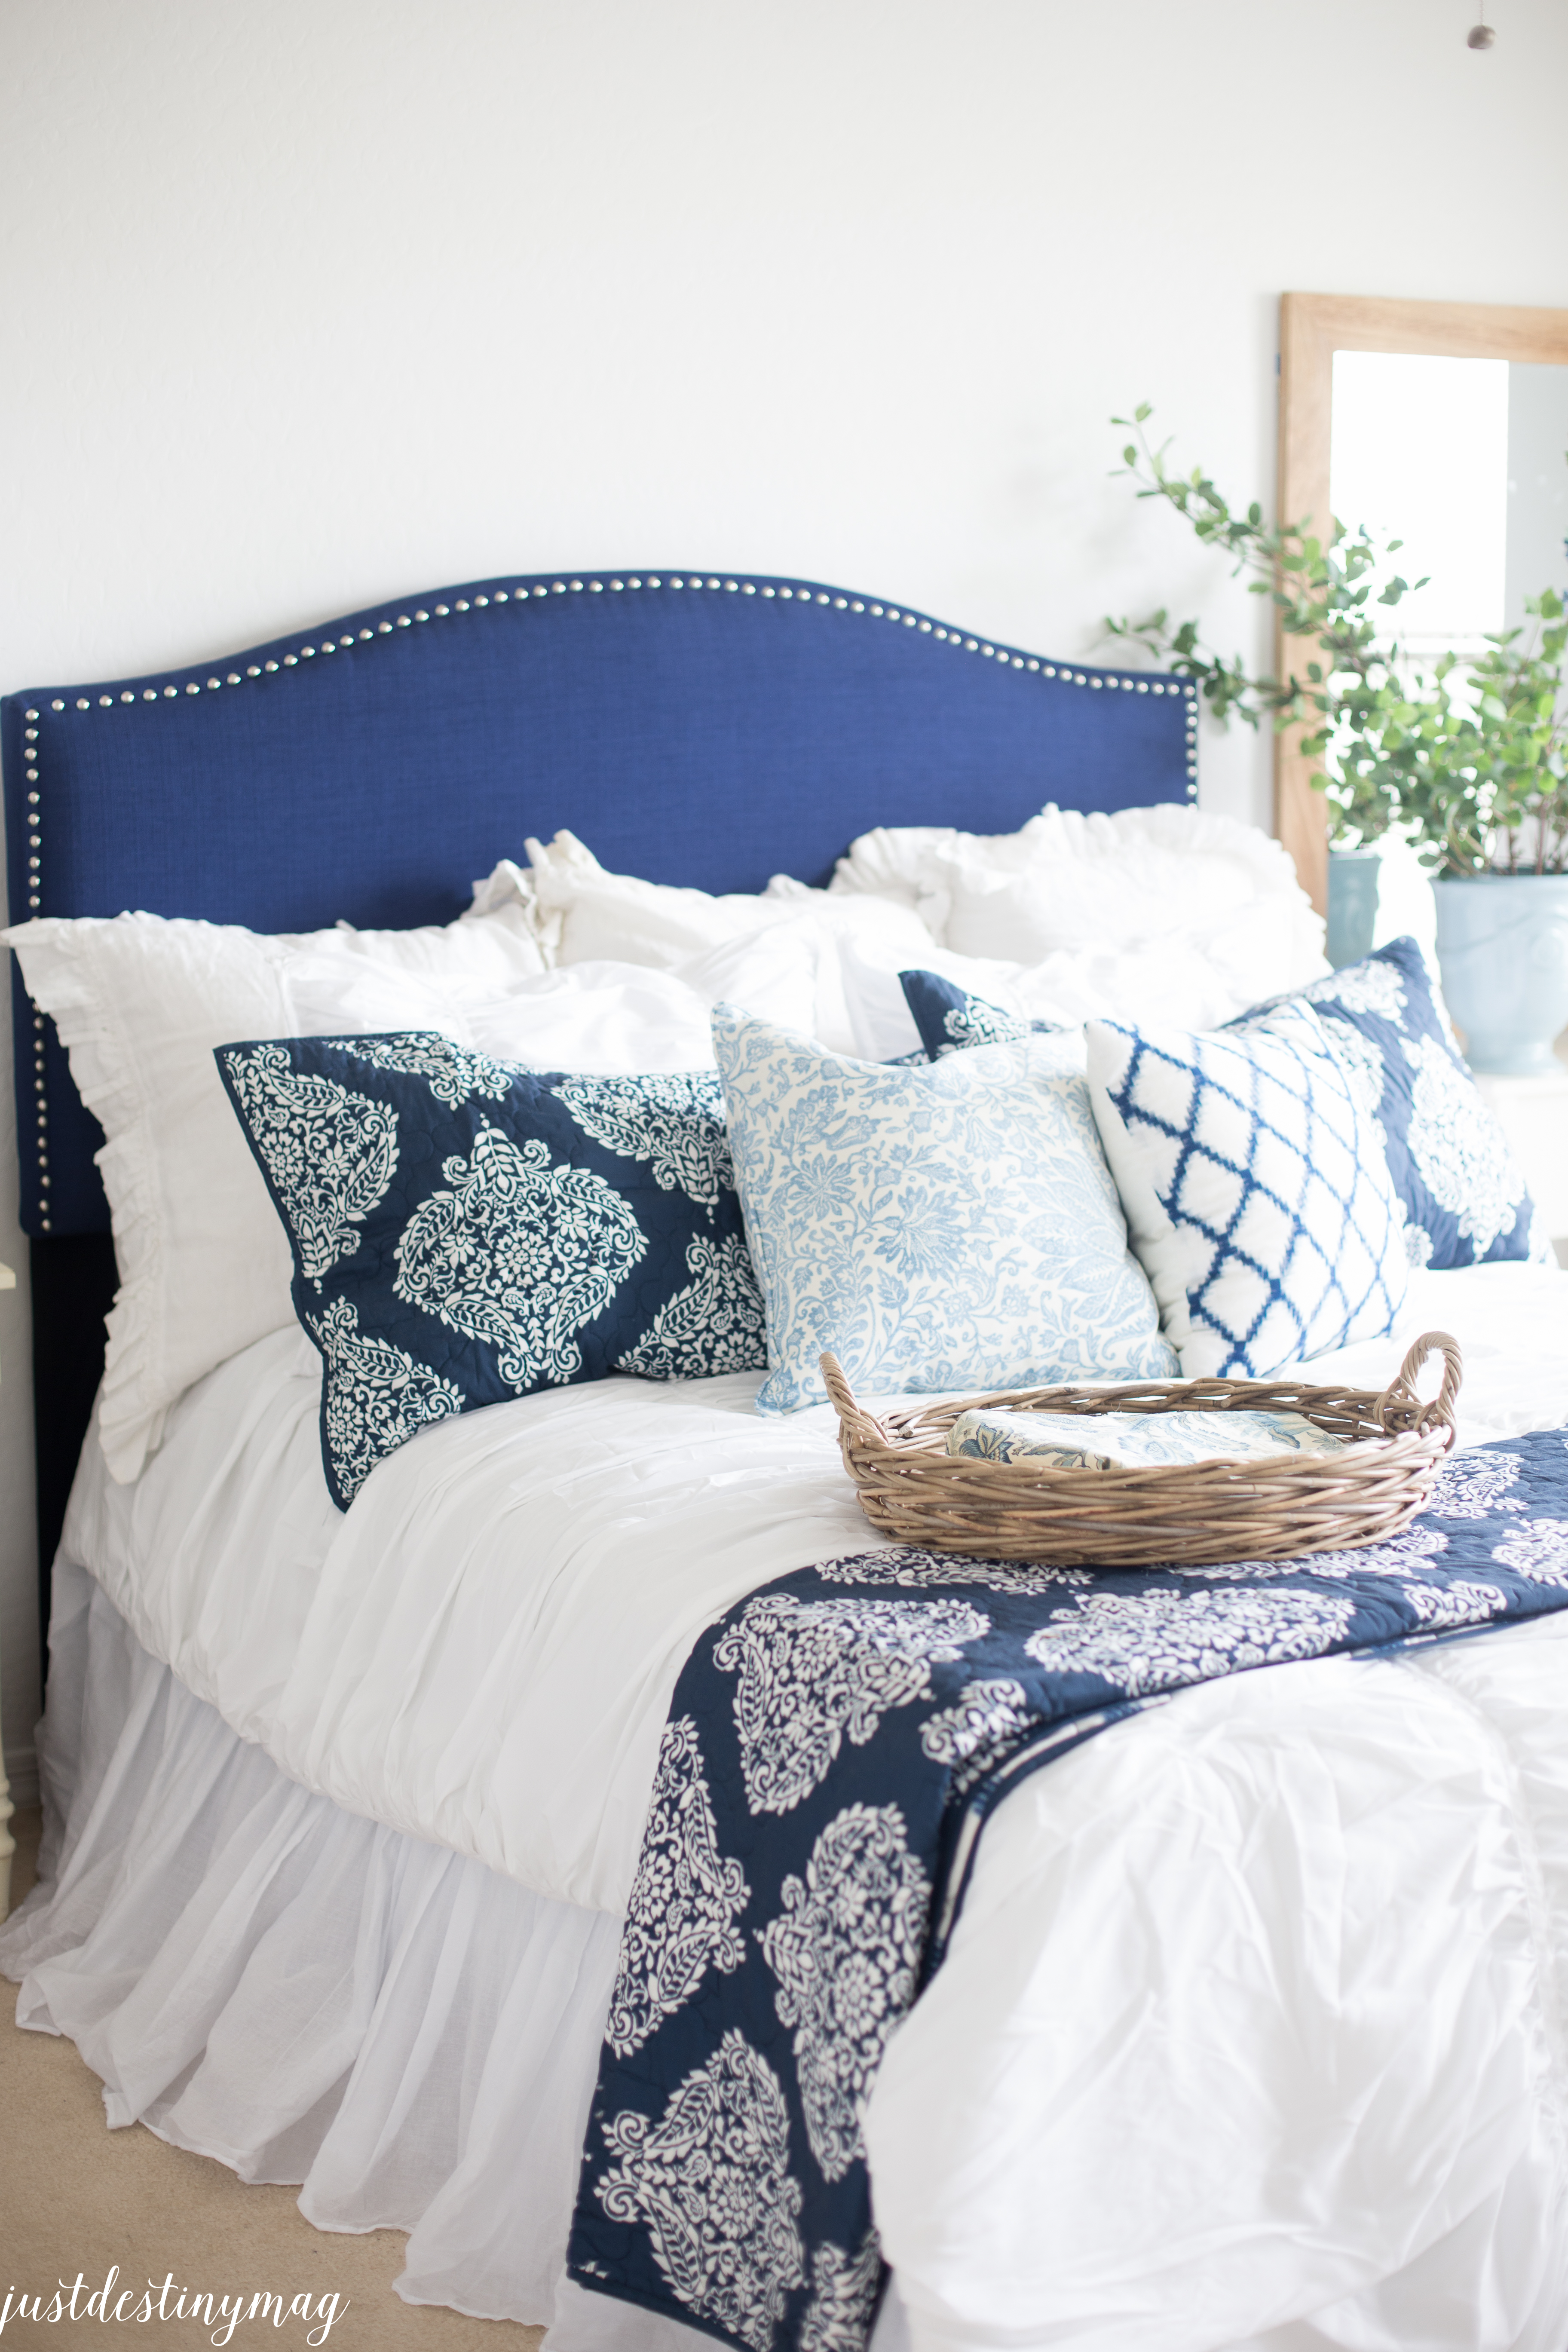 Bhg Products From Walmart In The Guest Room Just Destiny